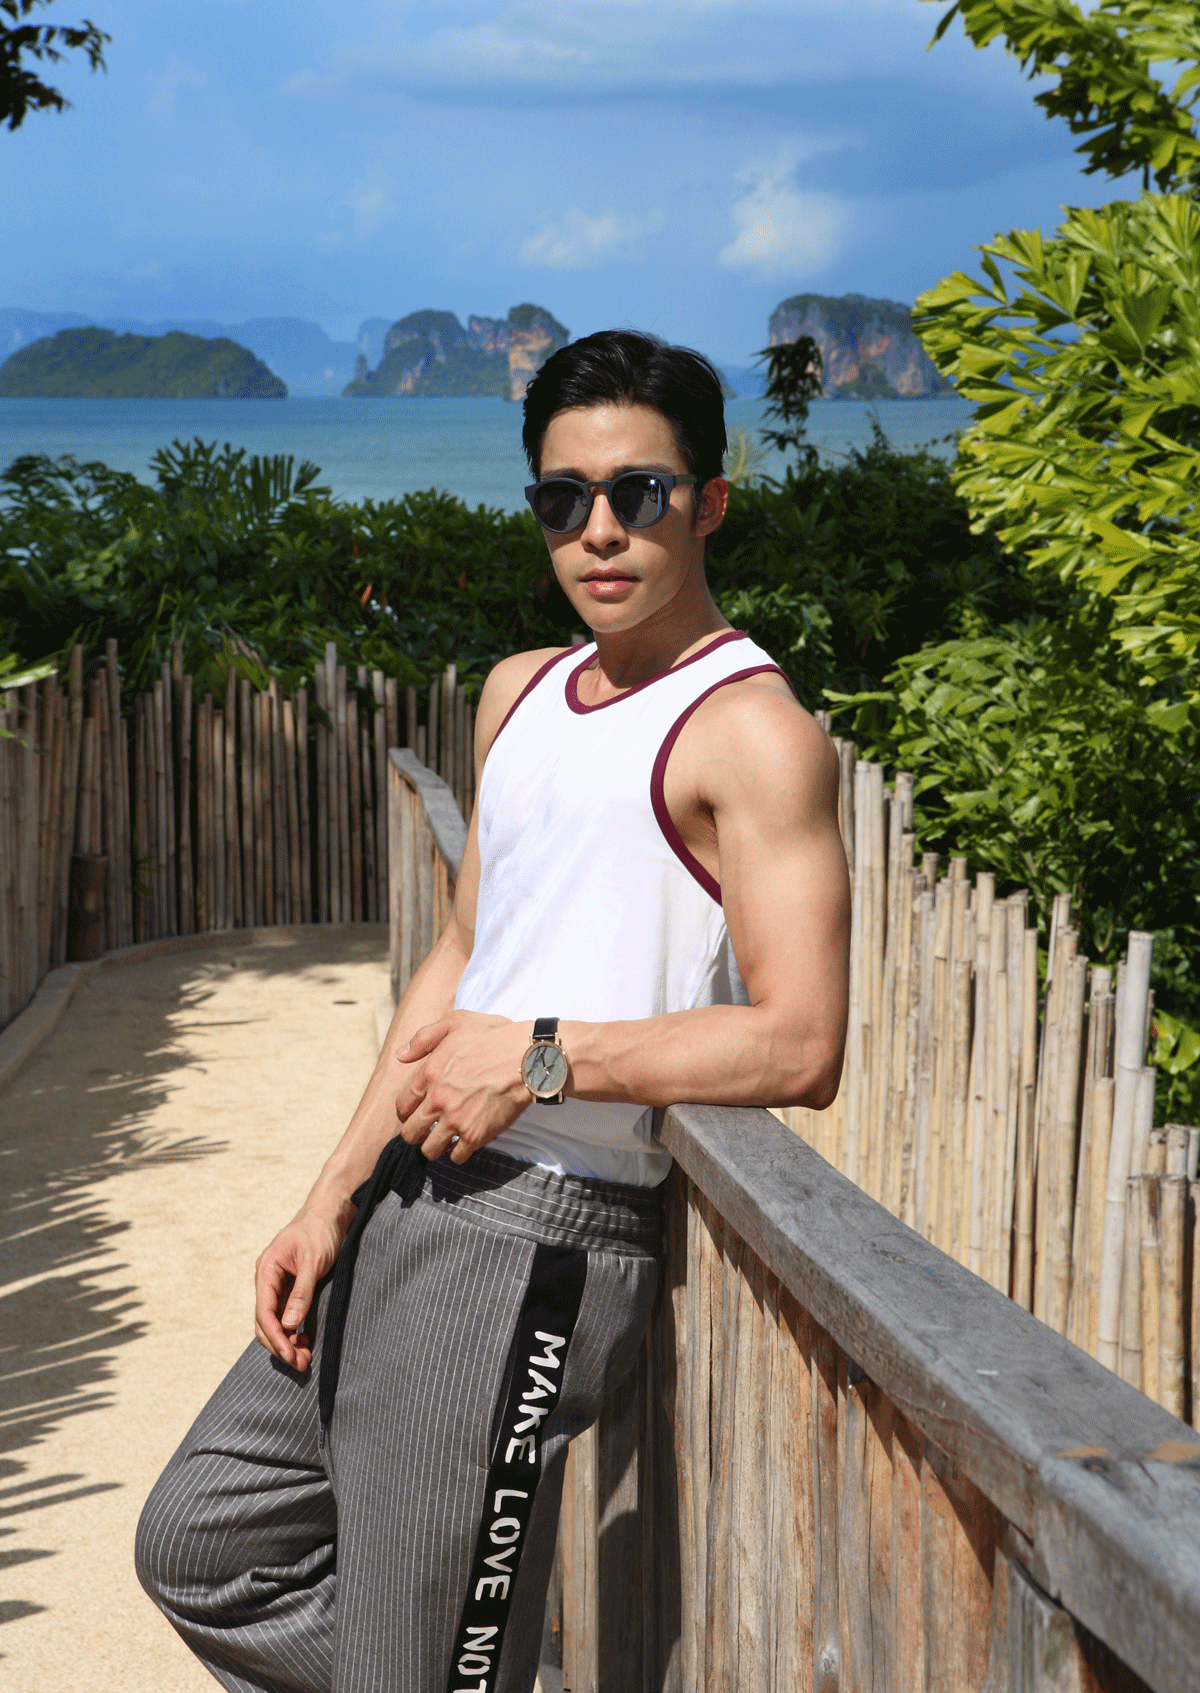 tank top : NOXX wear / pants : Everyday Km Km / sunglasses : GLAZZIQ / watch : FORREST